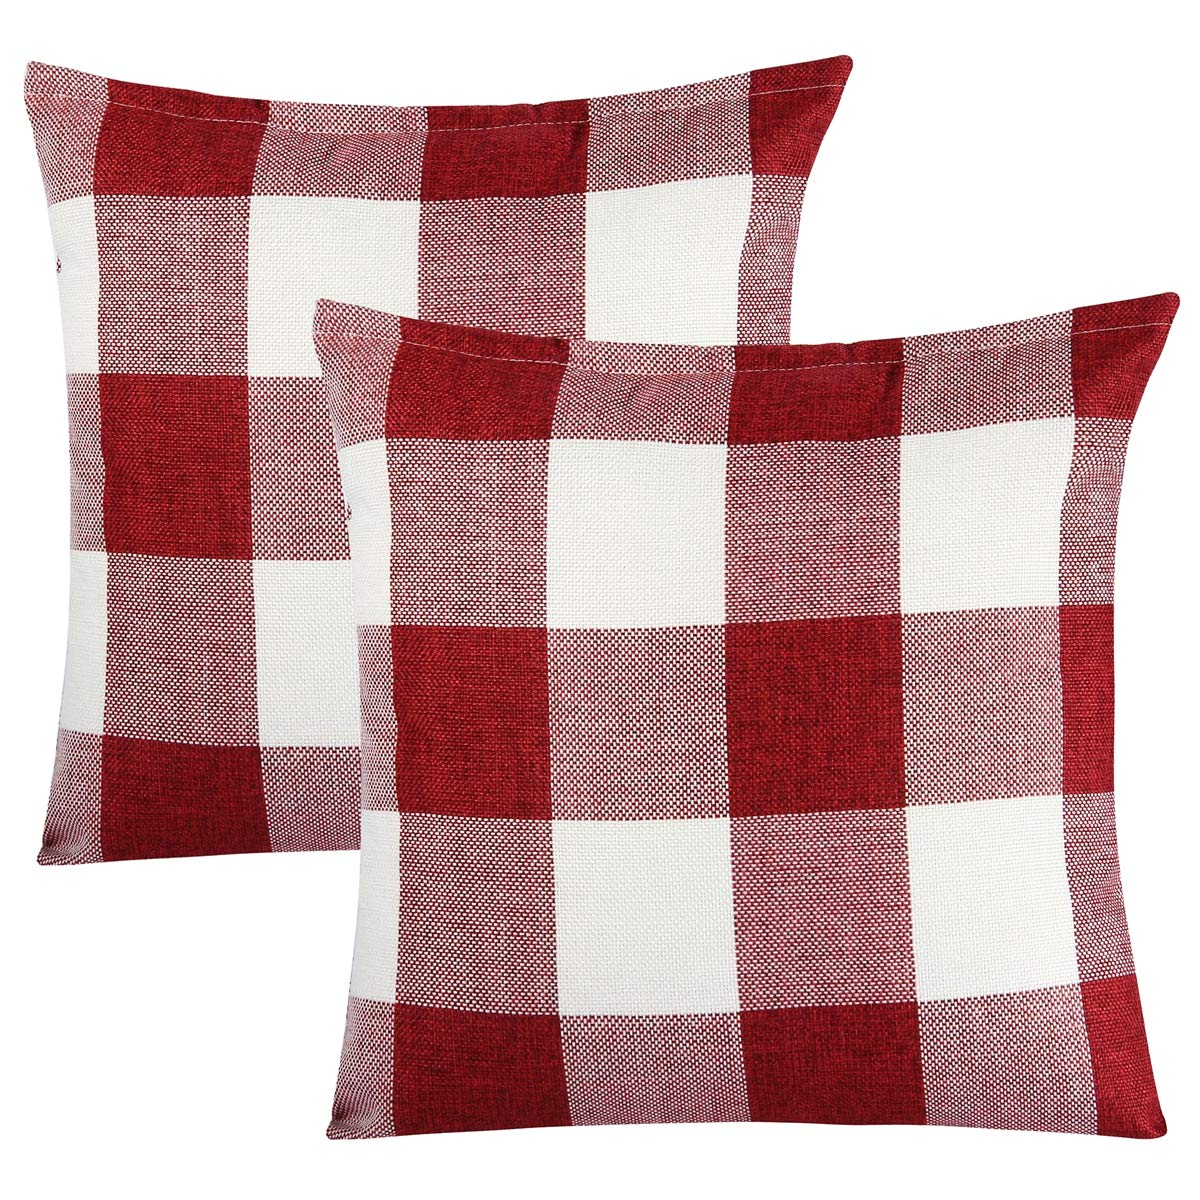 Steven.Smith 2 Pack Rustic Farmhouse Decorative Buffalo Checkers Plaids Throw Pillow Cover Xmas Decor Cushion Covers Square 18x18 Inch Linen Home Office Living Room Sofa (Black and White)